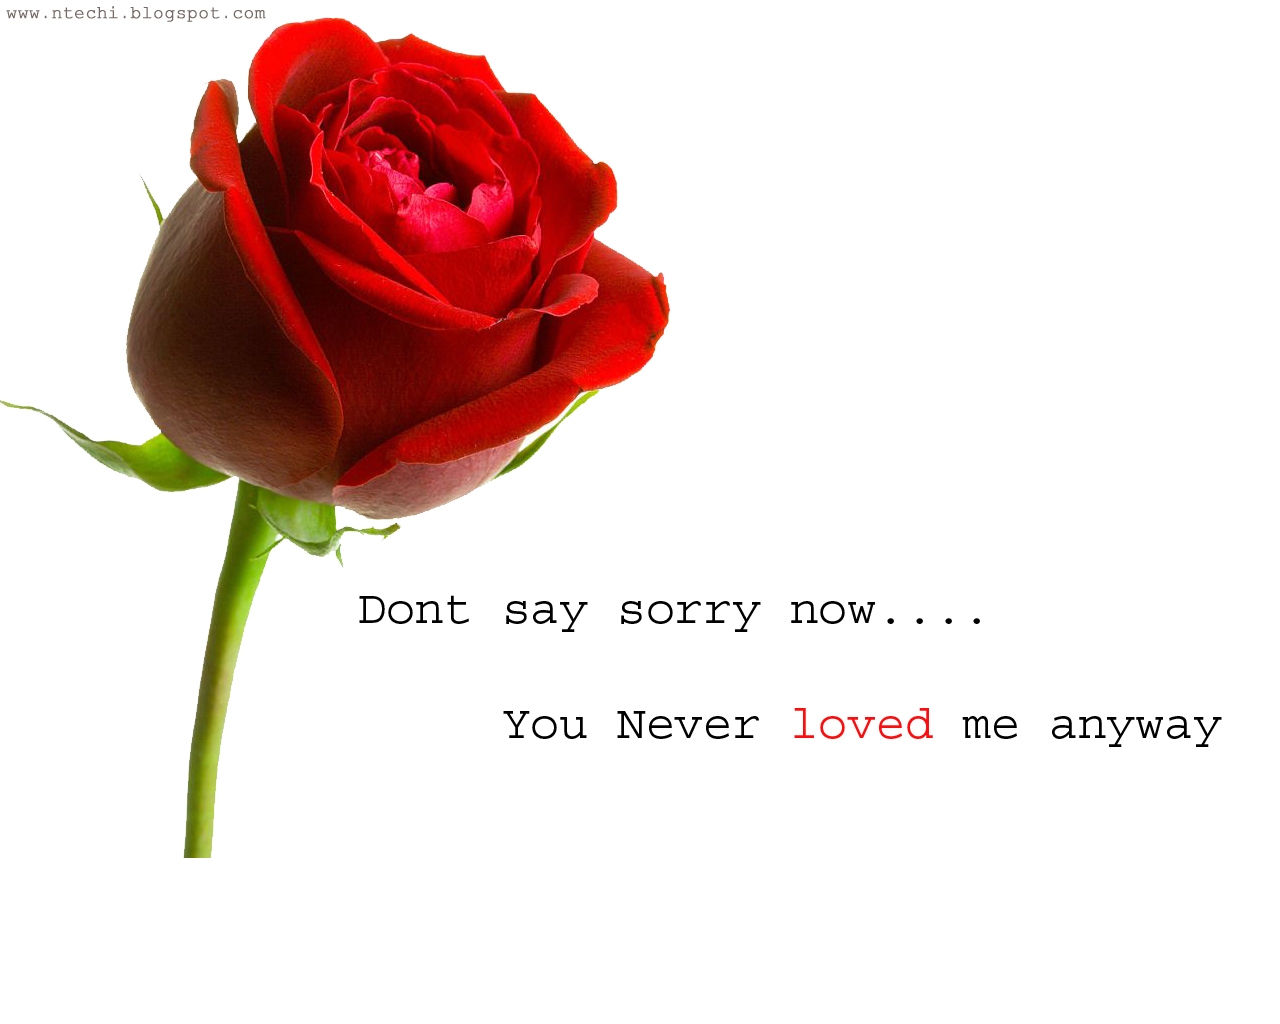 Sorry images hd for love adsleaf newmagazine dont say sorry now you never loved me anyway images sorry pichers hd thecheapjerseys Image collections